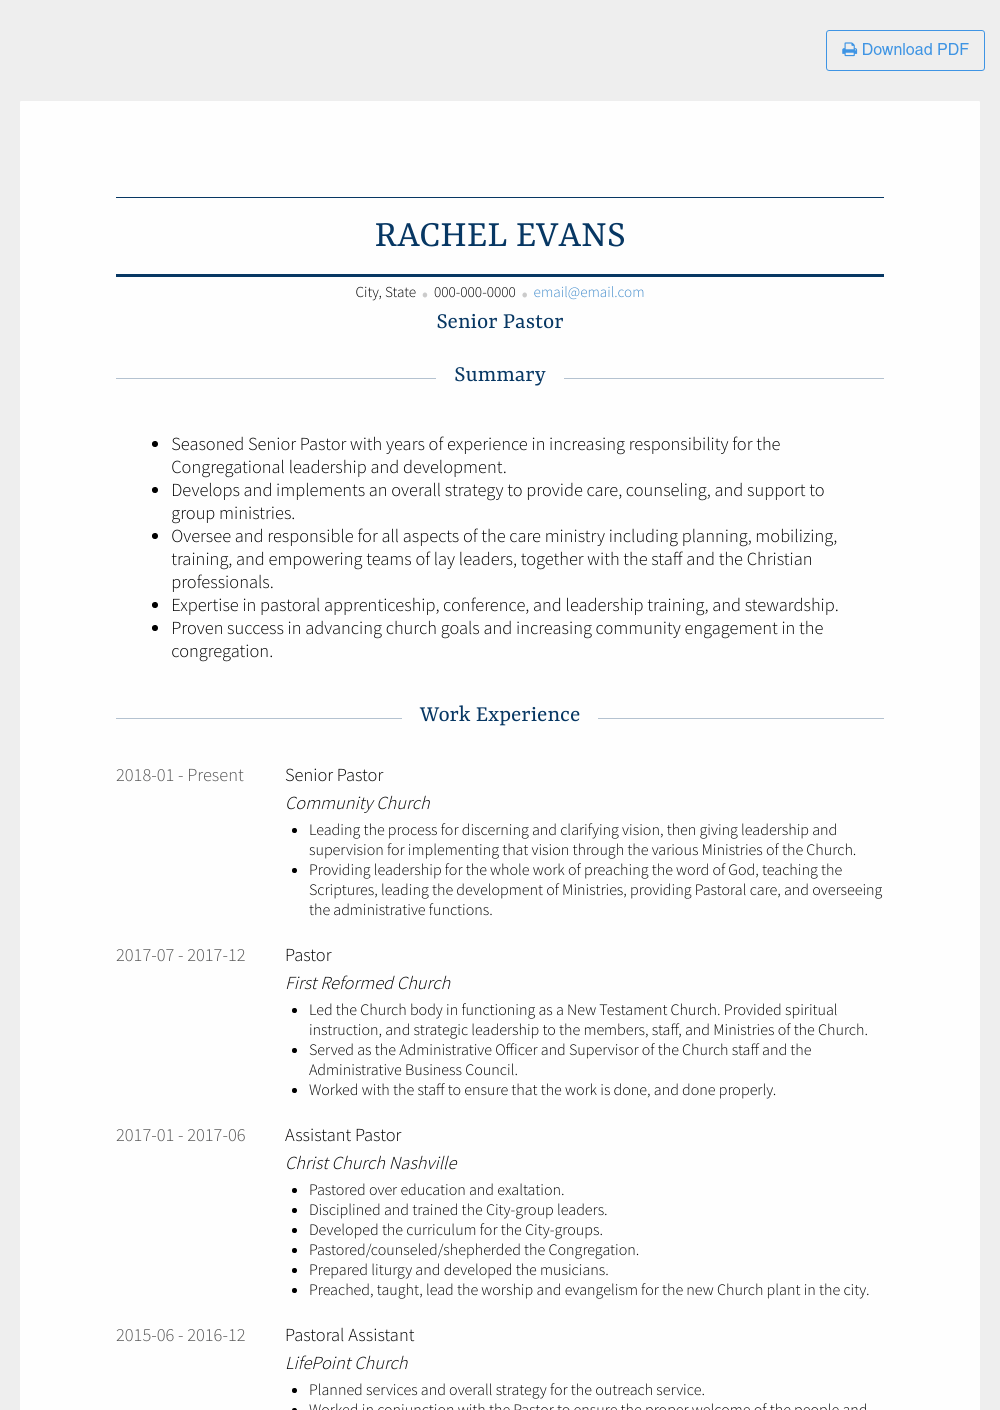 Senior Pastor Resume Sample and Template